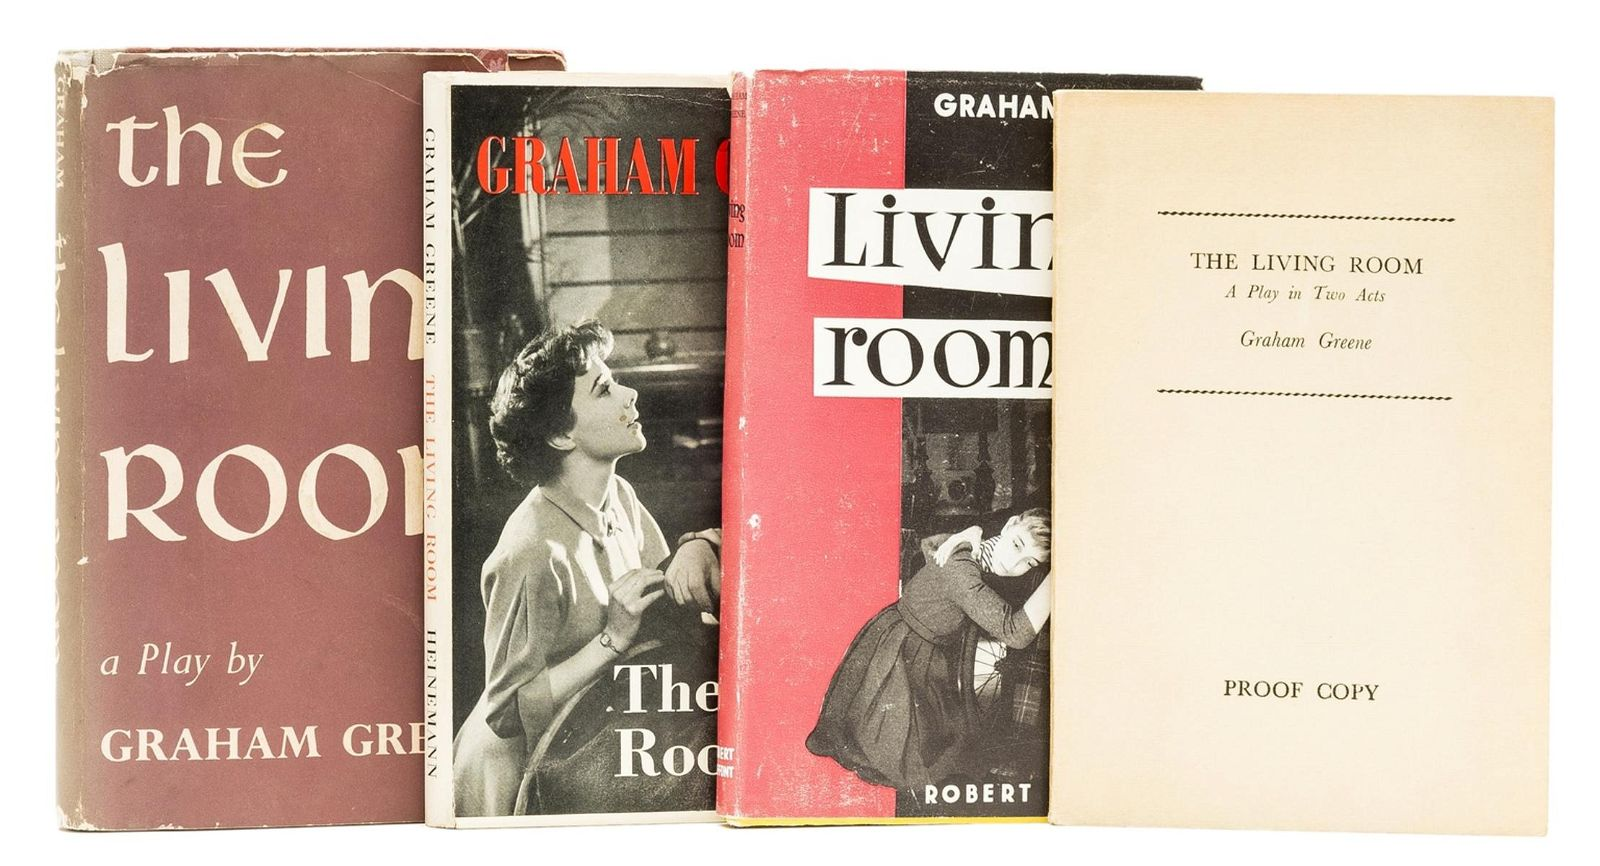 Greene (Graham) The Living Room: a Play in Two Acts,